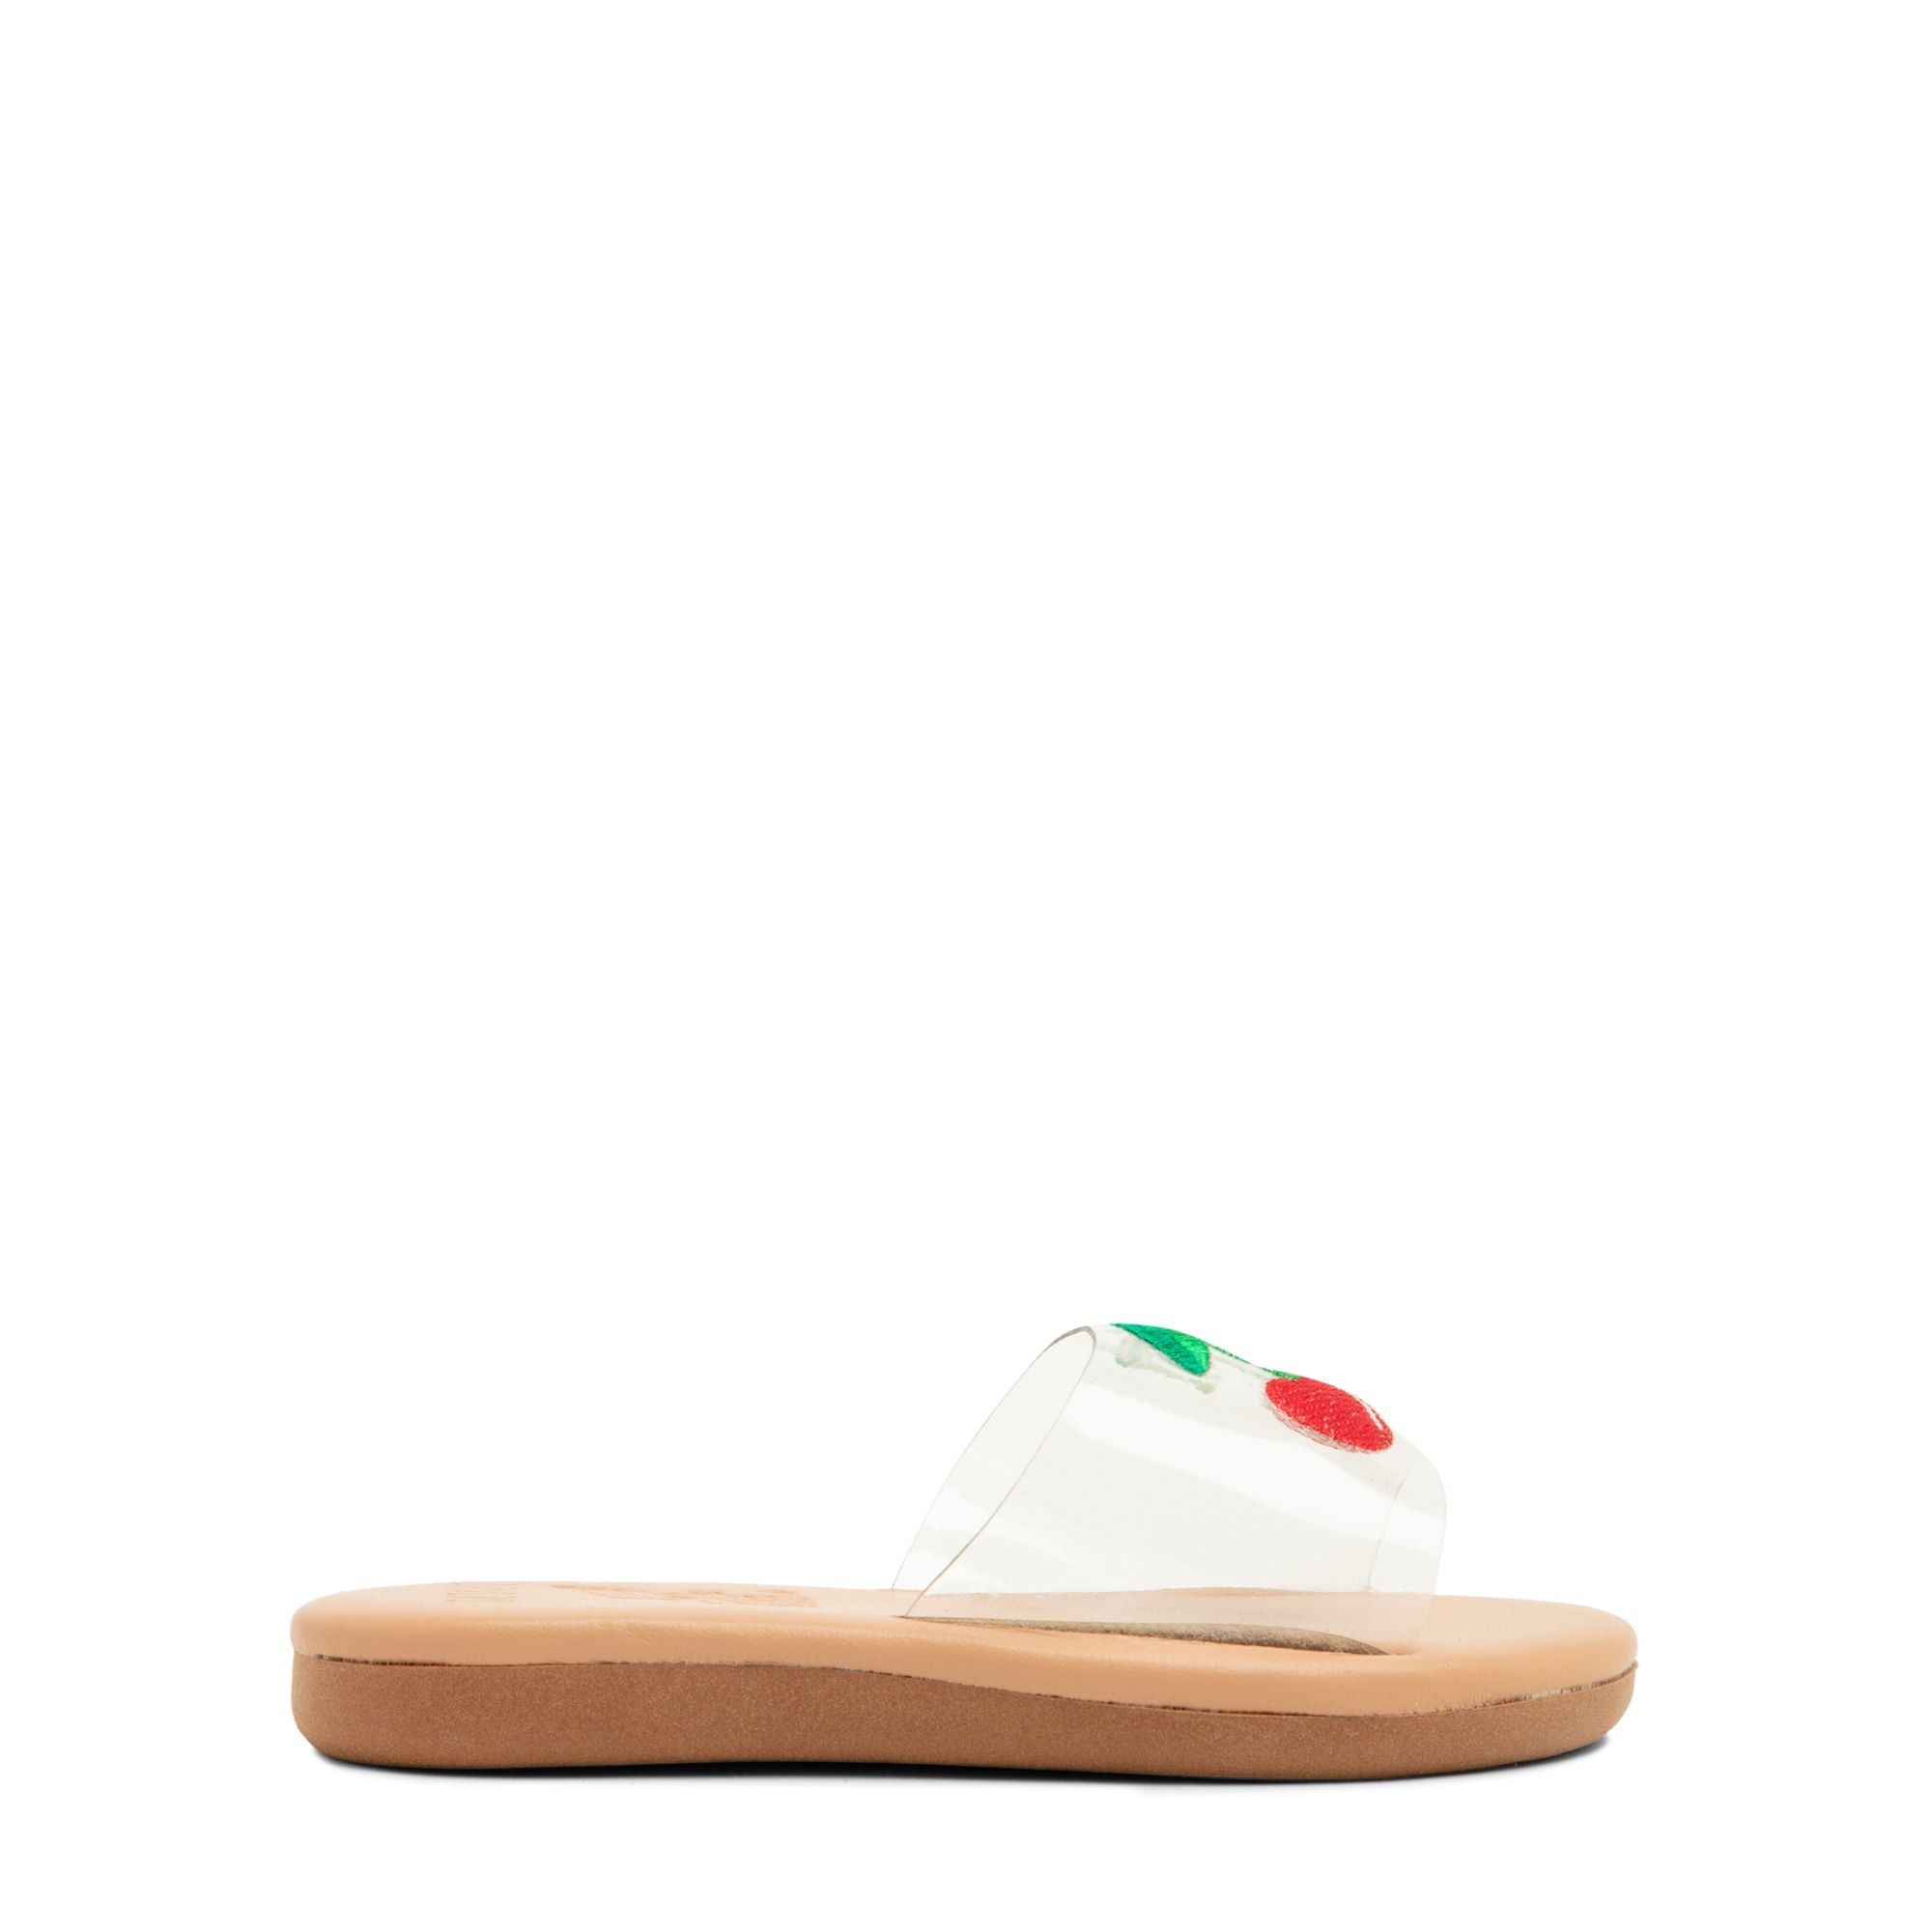 Exclusive Little Taygete cherry sandals